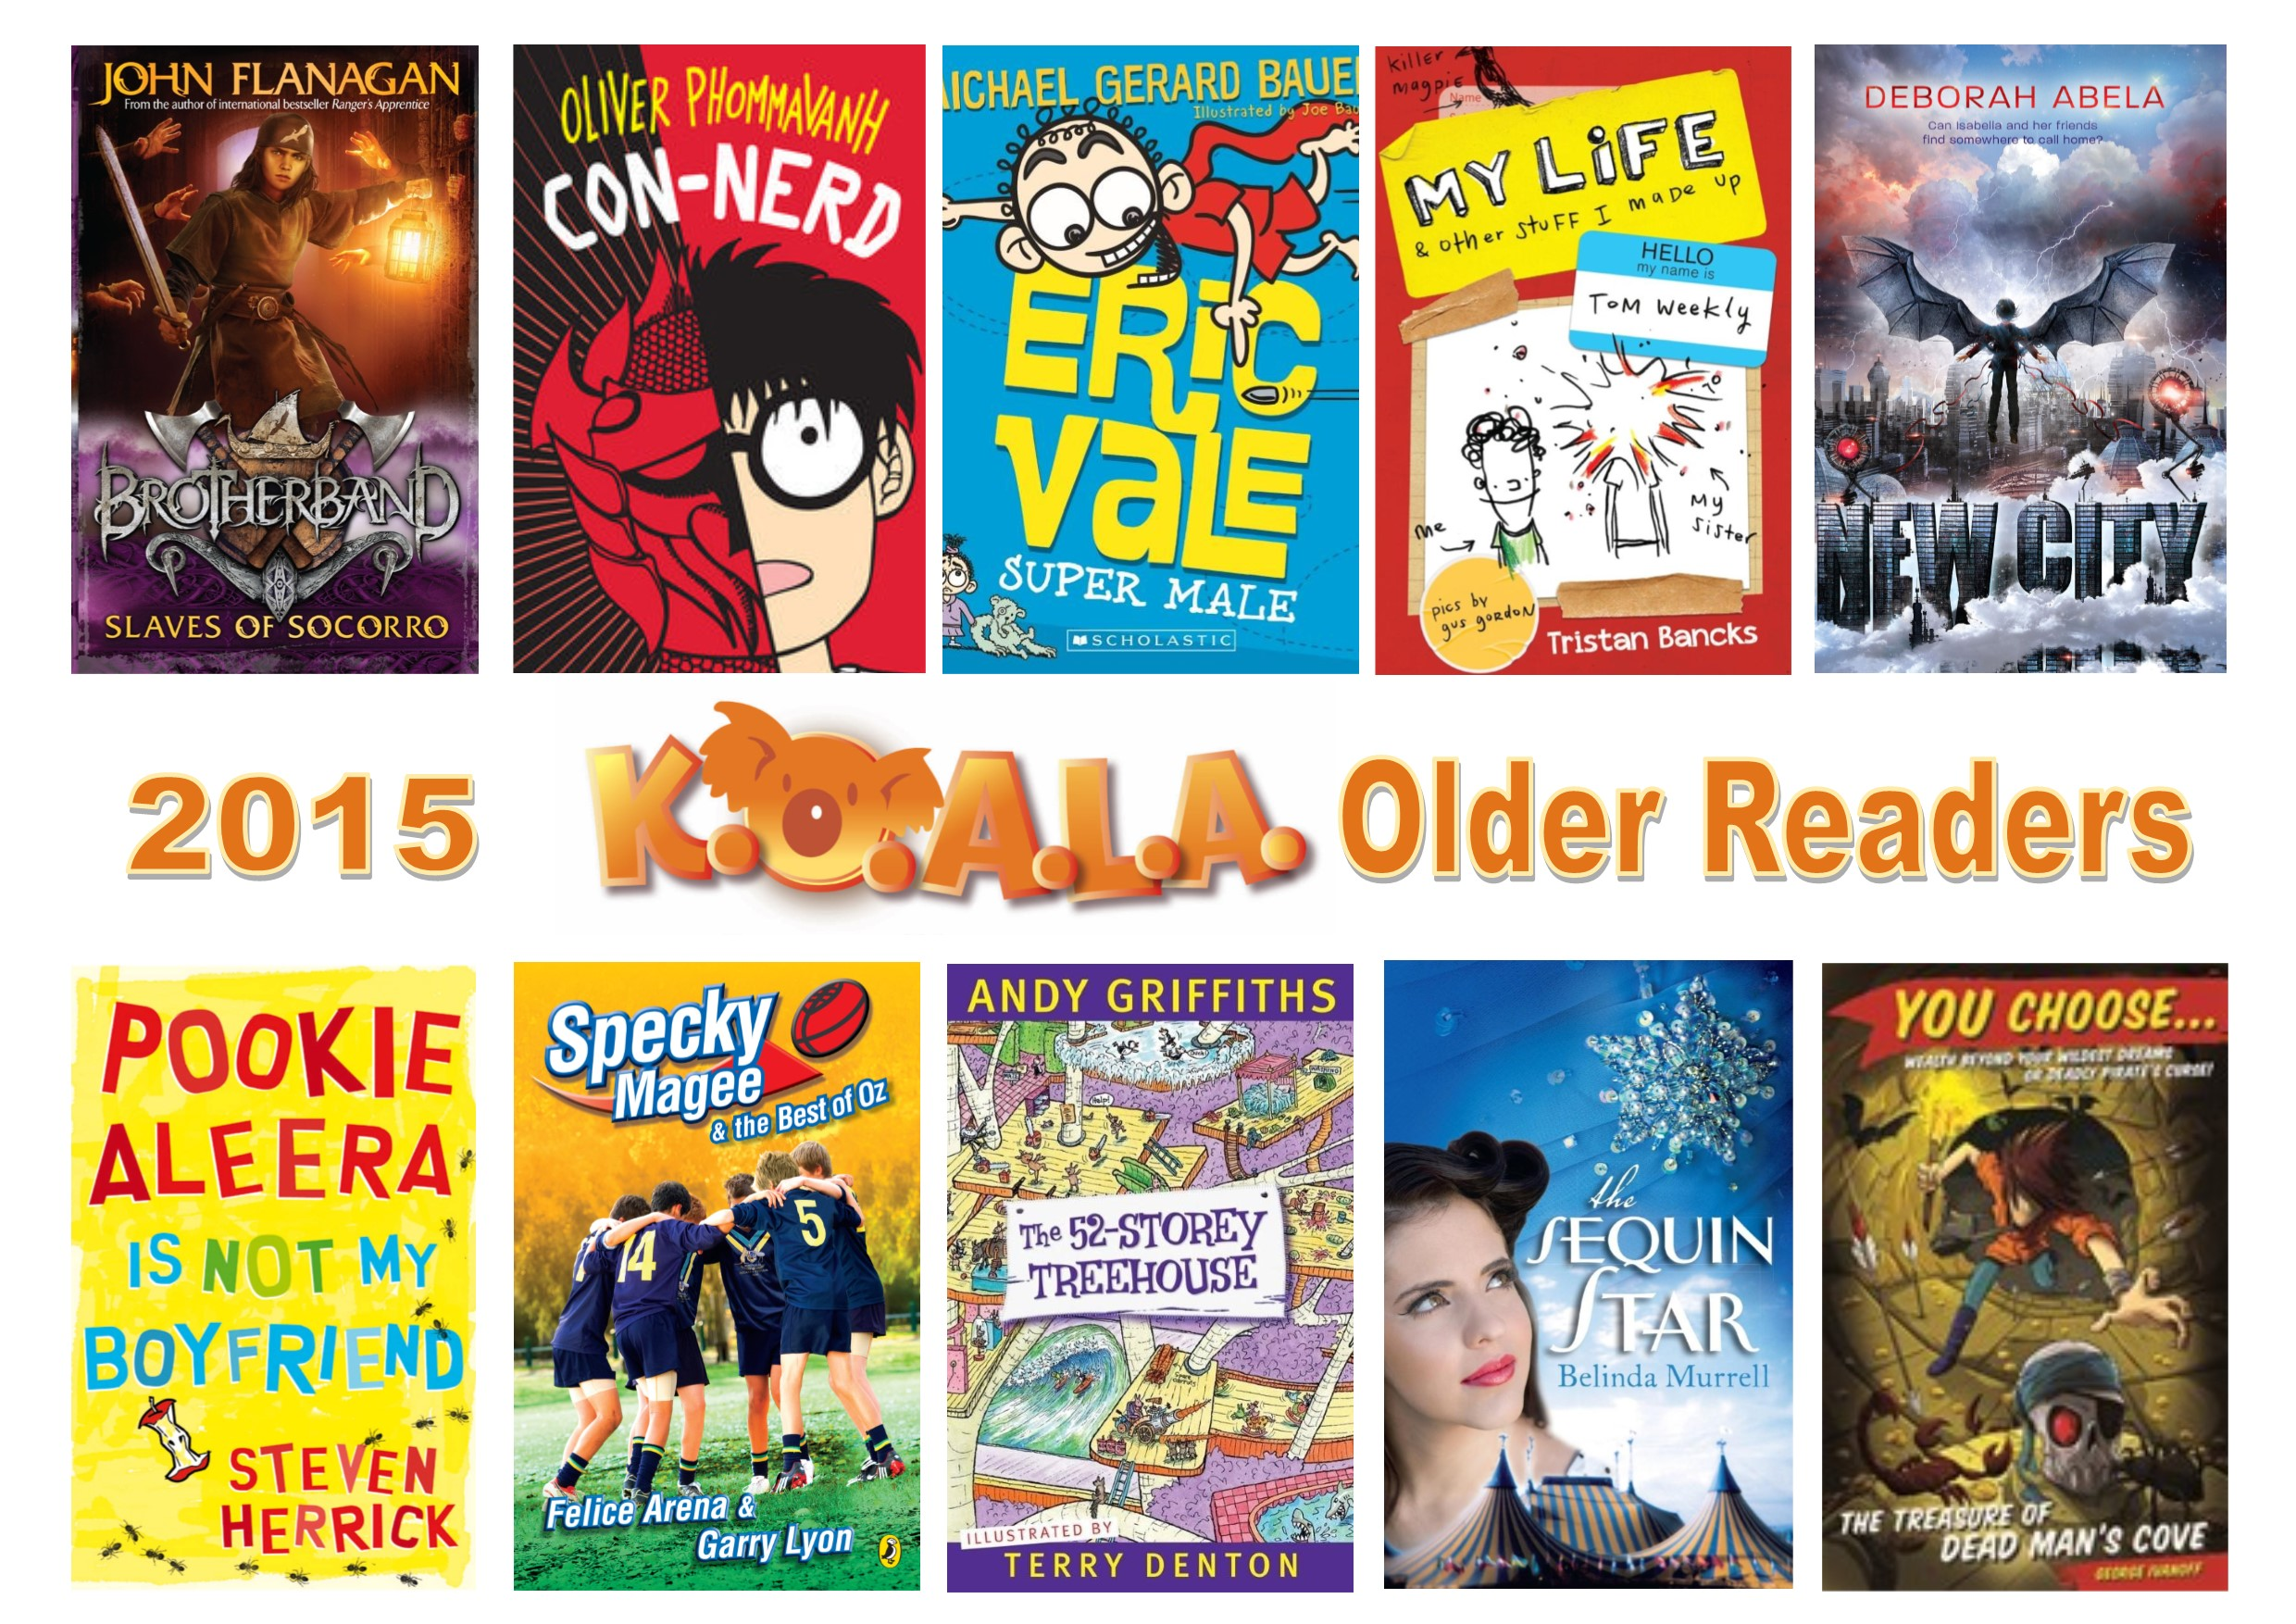 KOALA+Shortlist+Older+Readers+2015.jpg